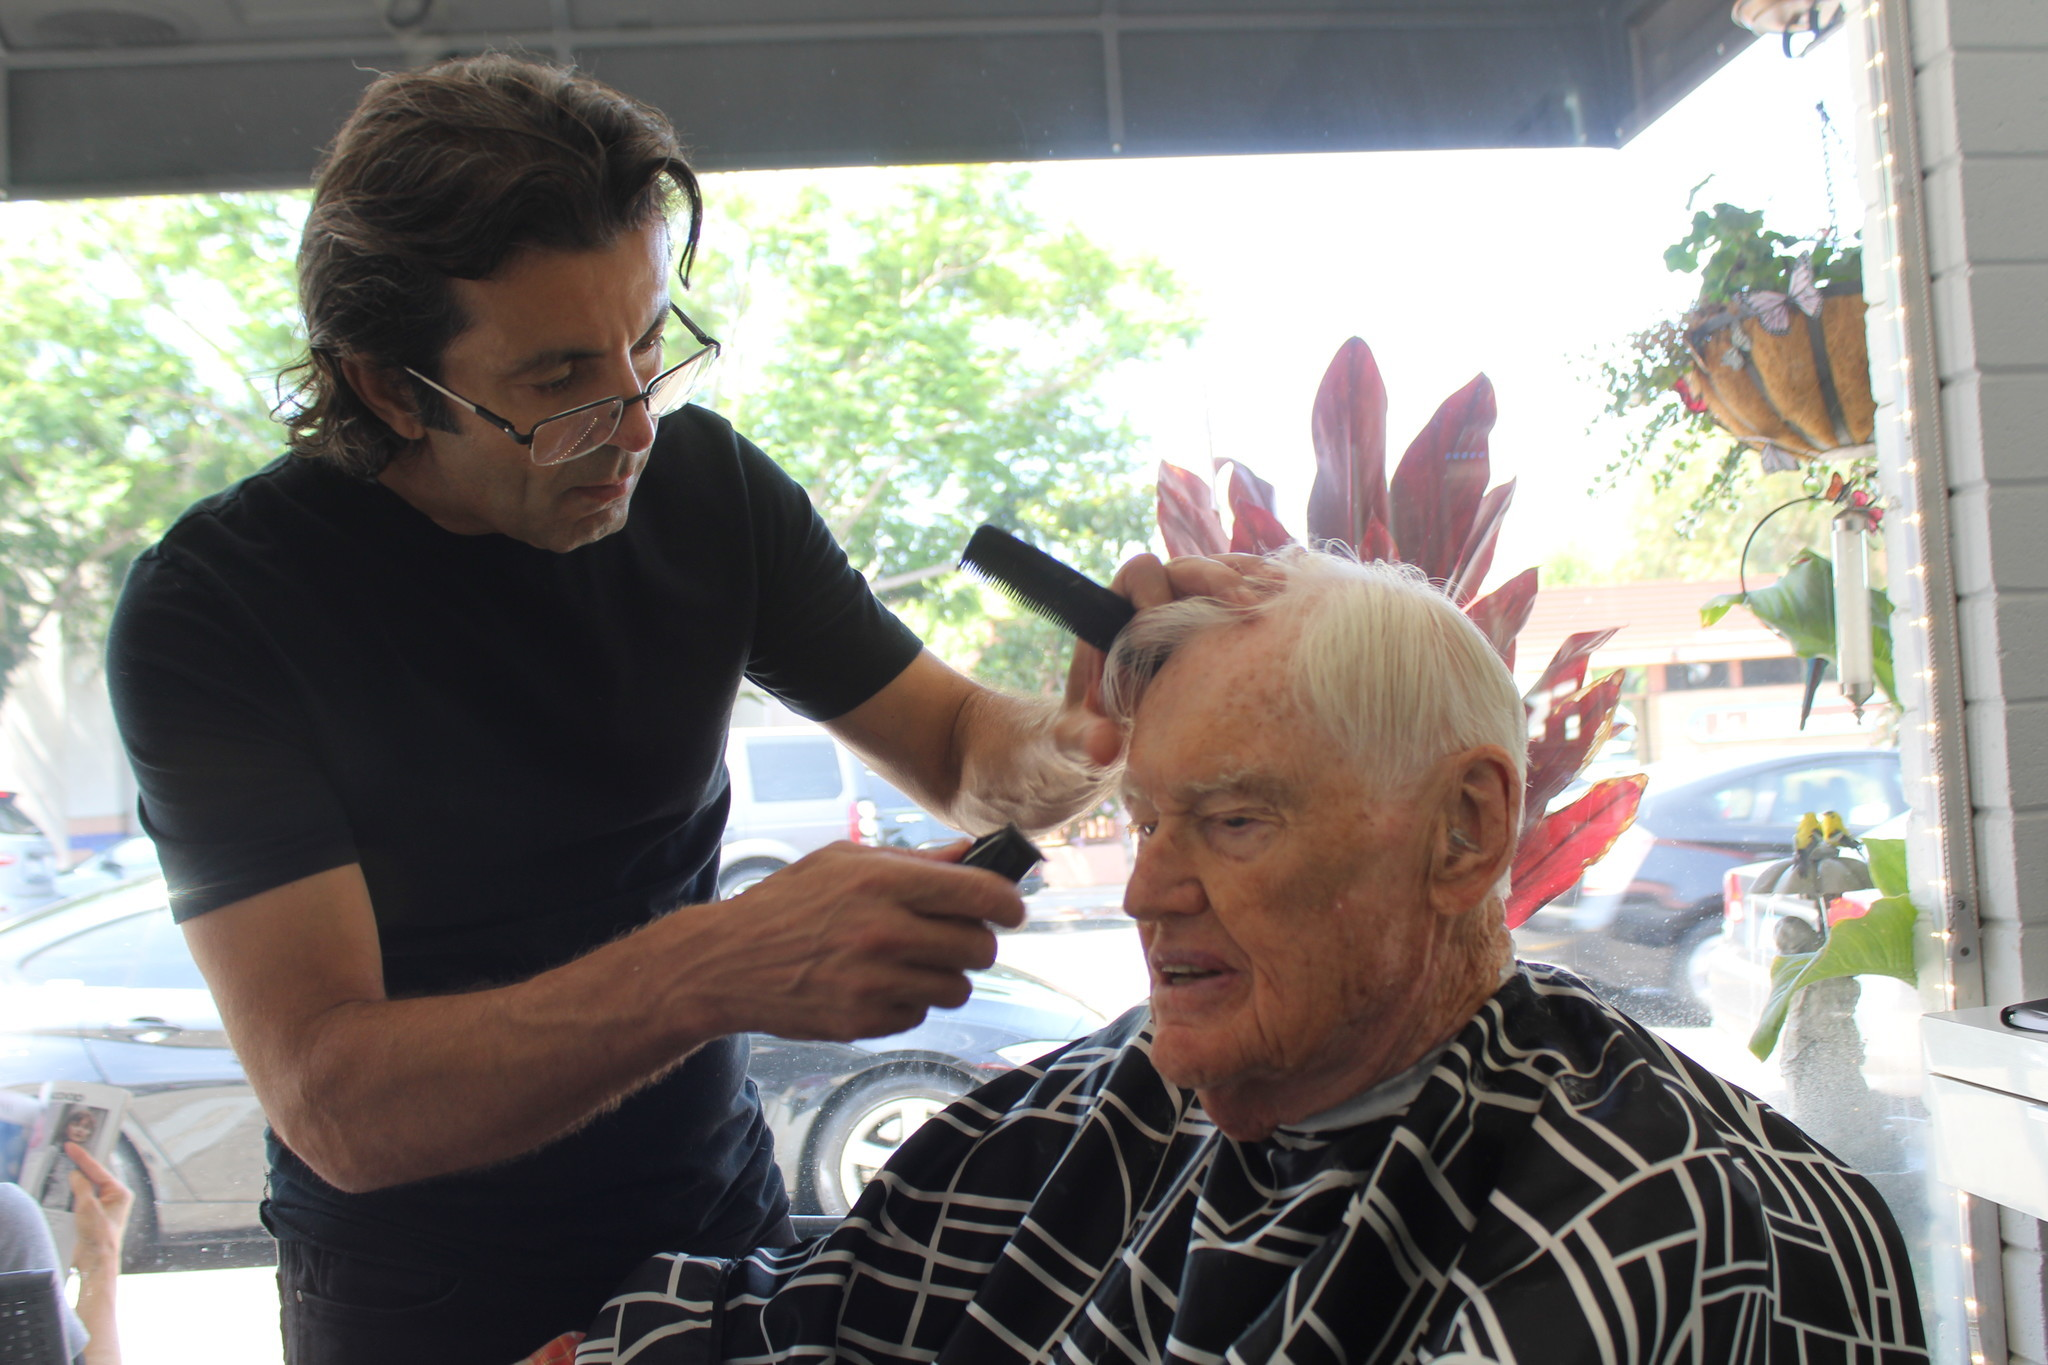 Crosby gets his six-week haircut from Alex Ashirob, owner of Alex Salon.